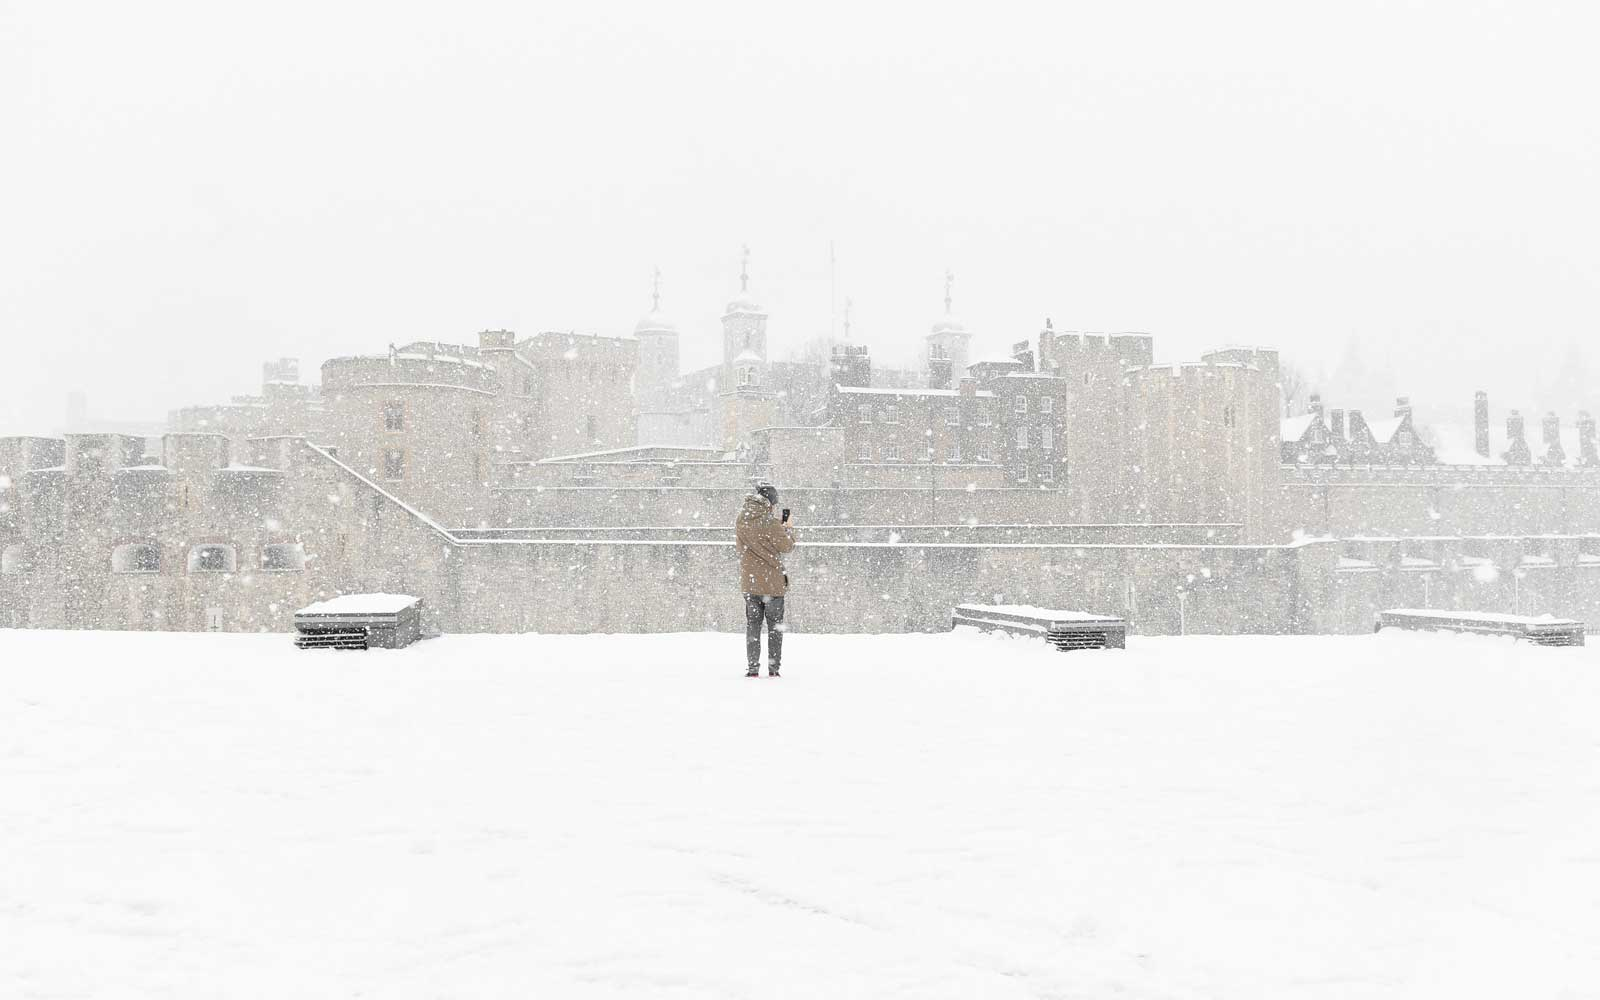 A man photographs the Tower of London in snowy conditions